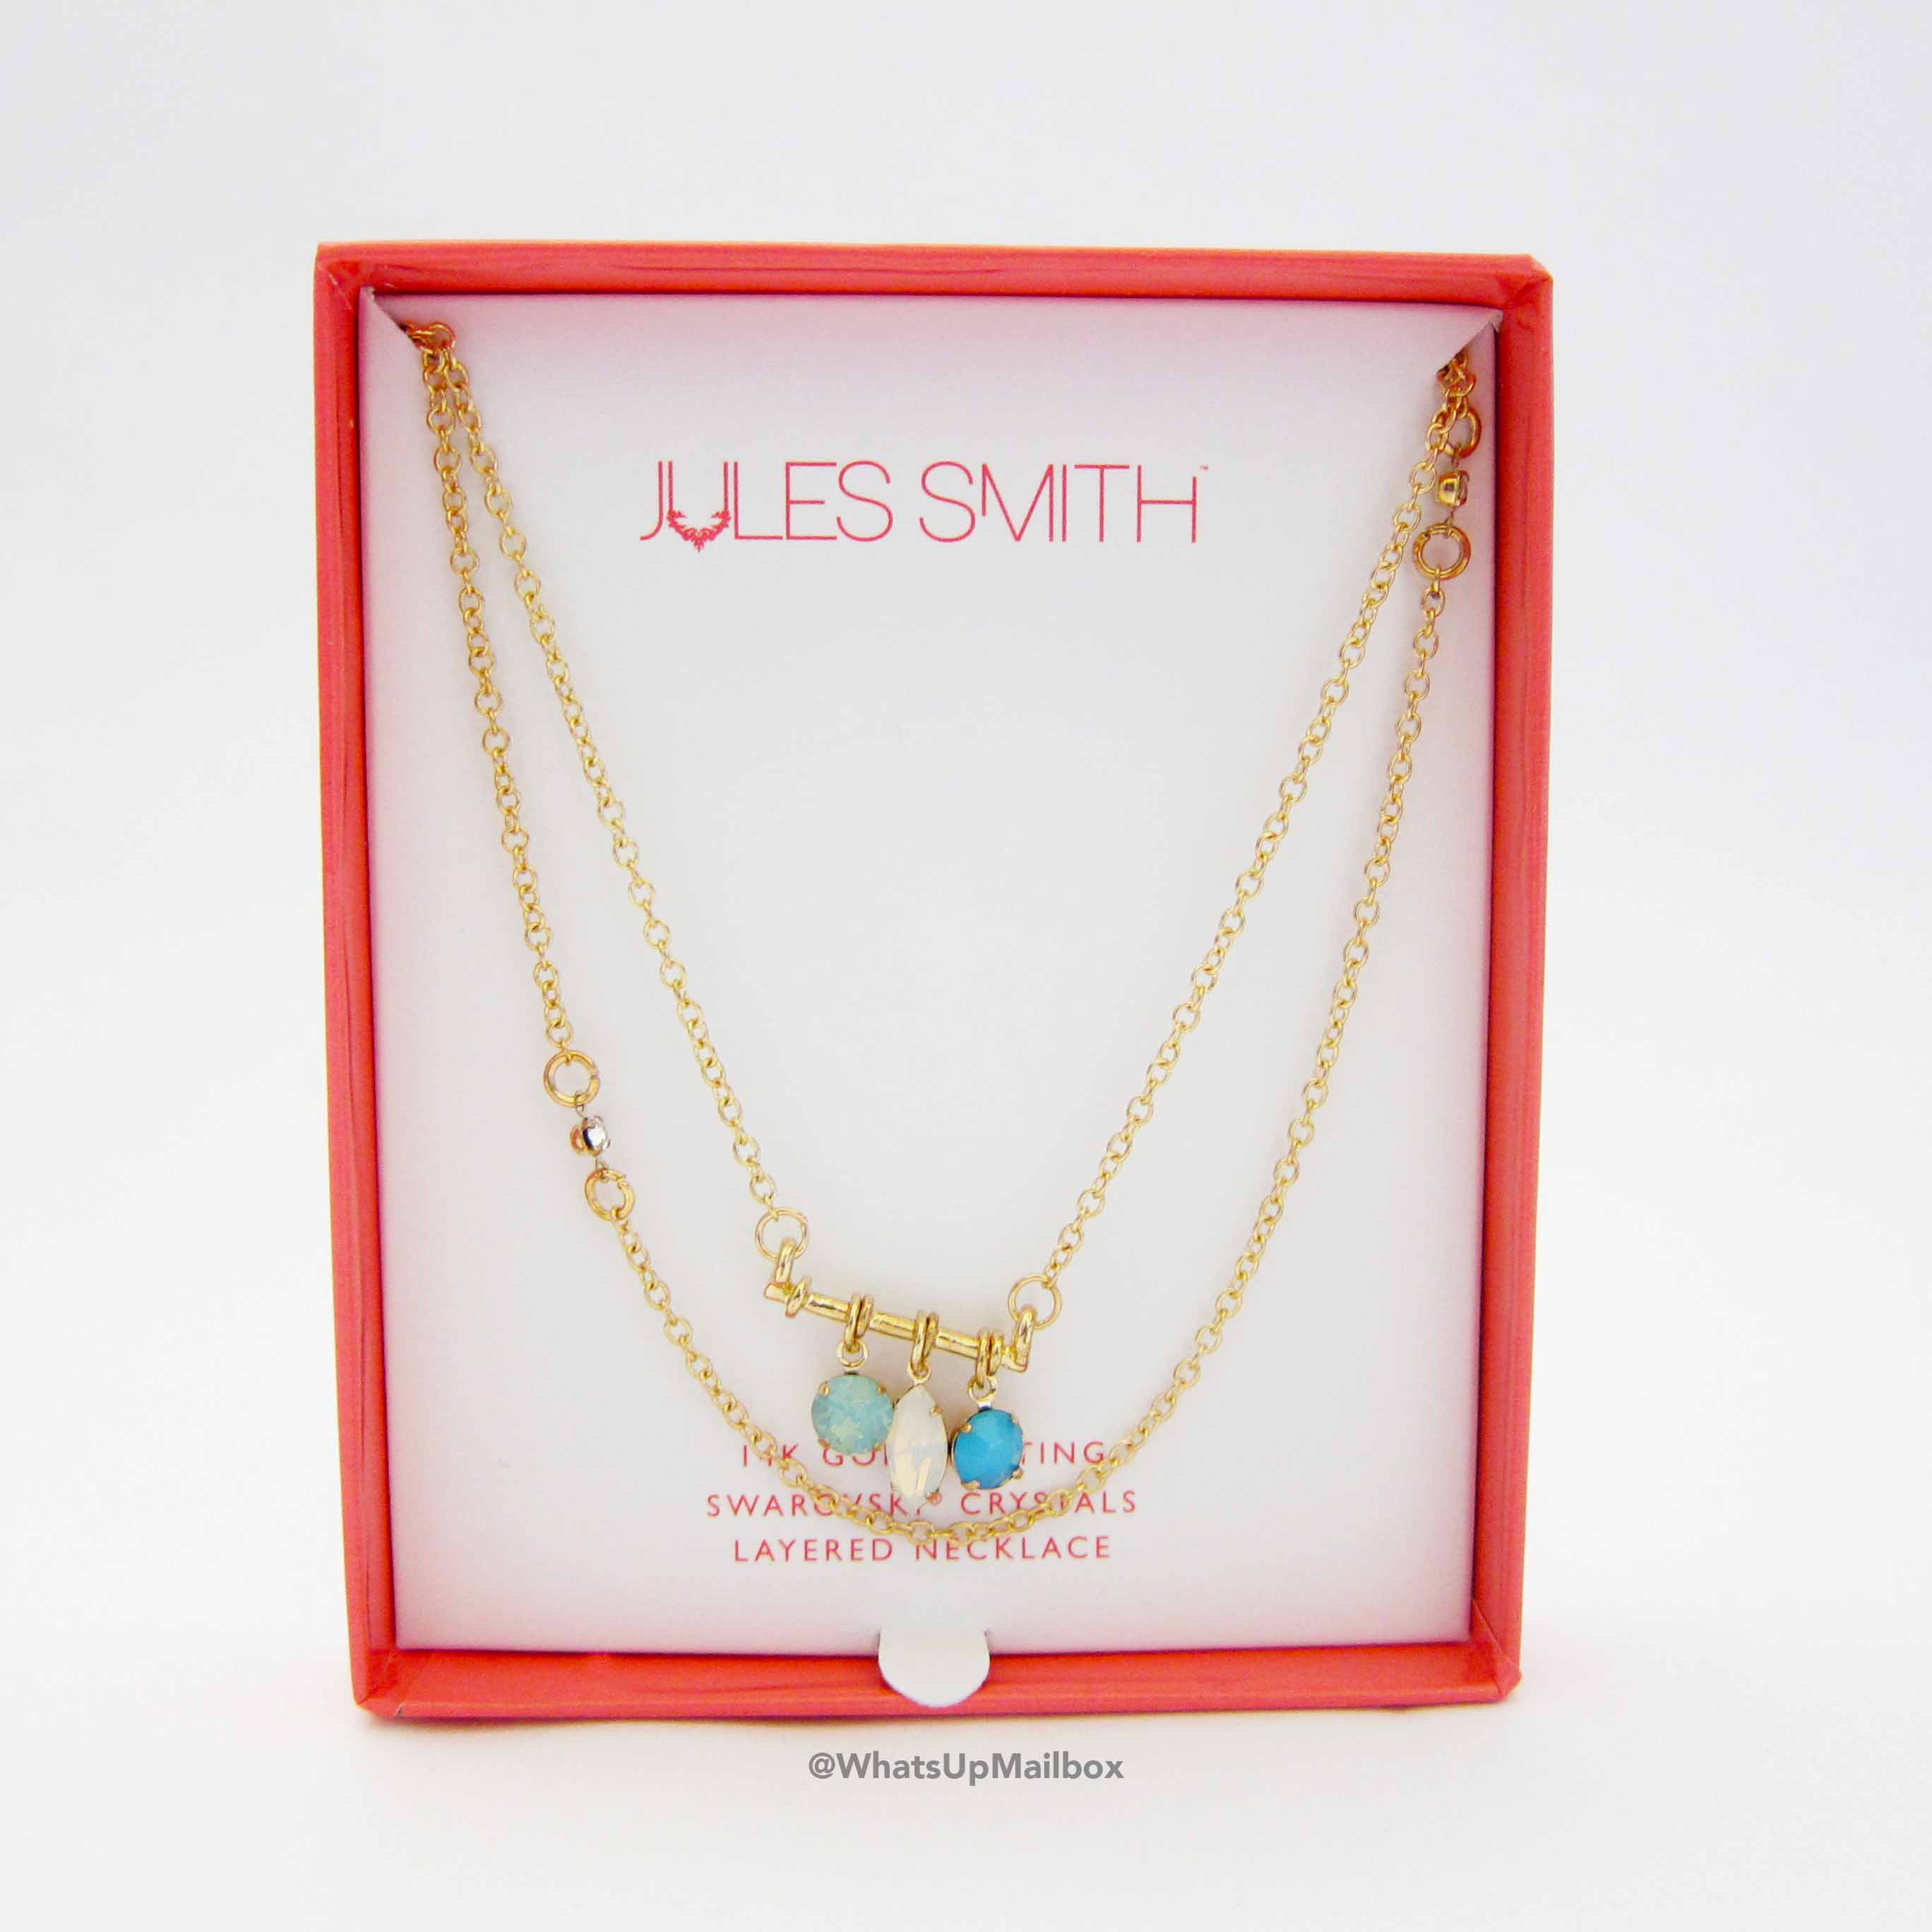 Jules Smith Gemma Necklace